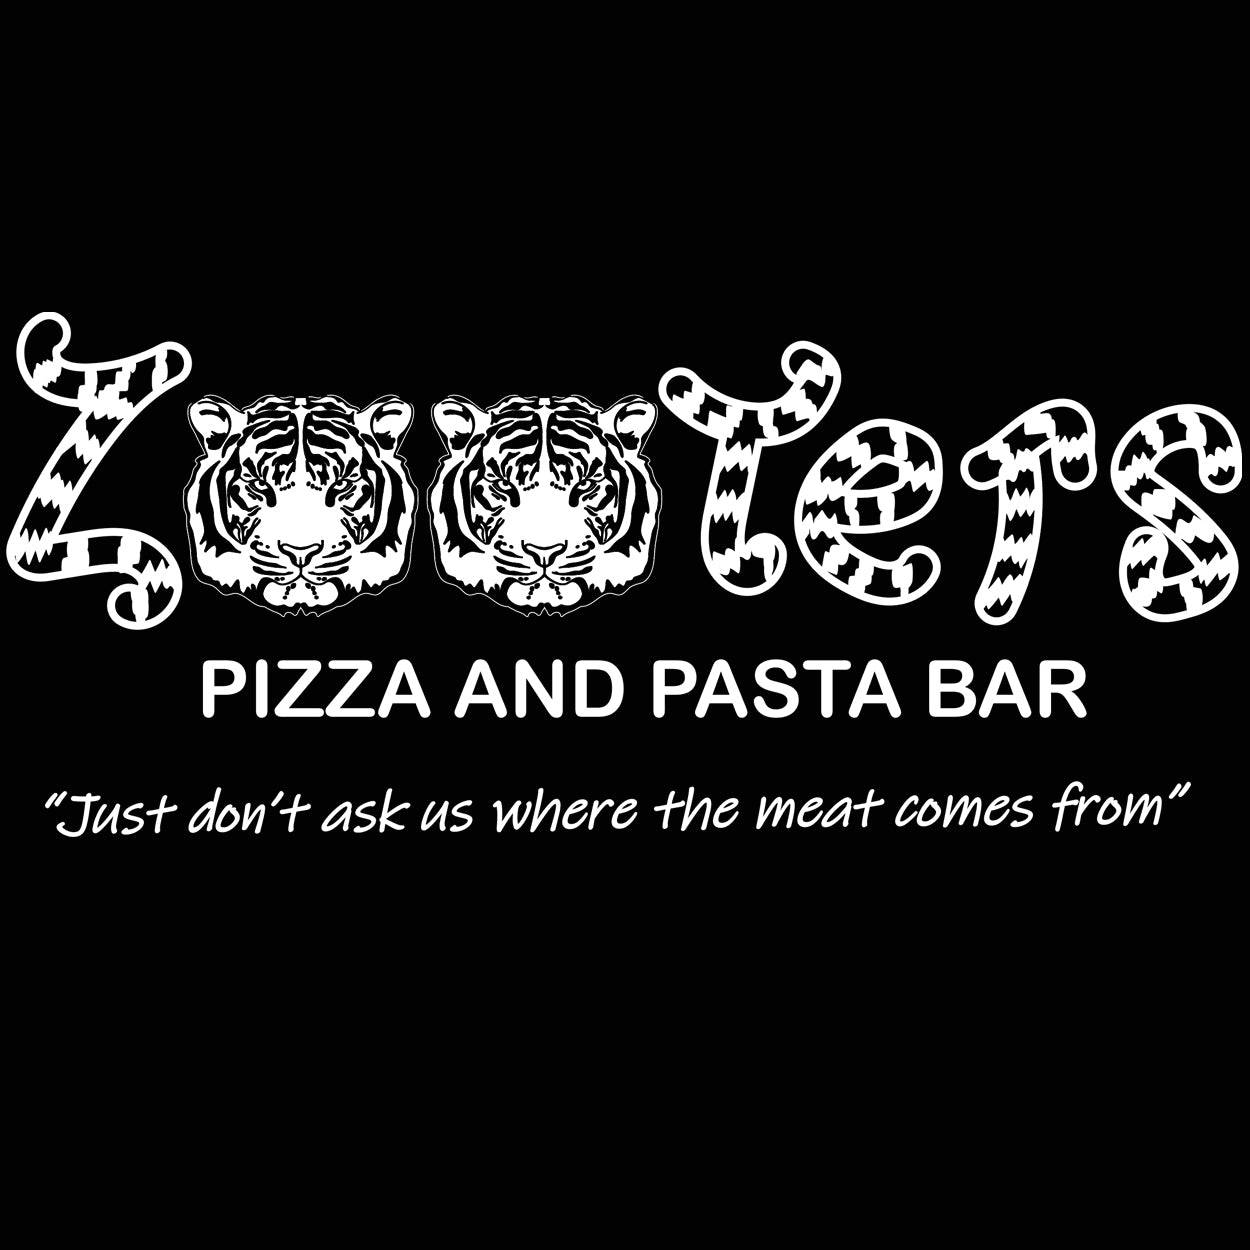 Zooters Pizza and Pasta Bar